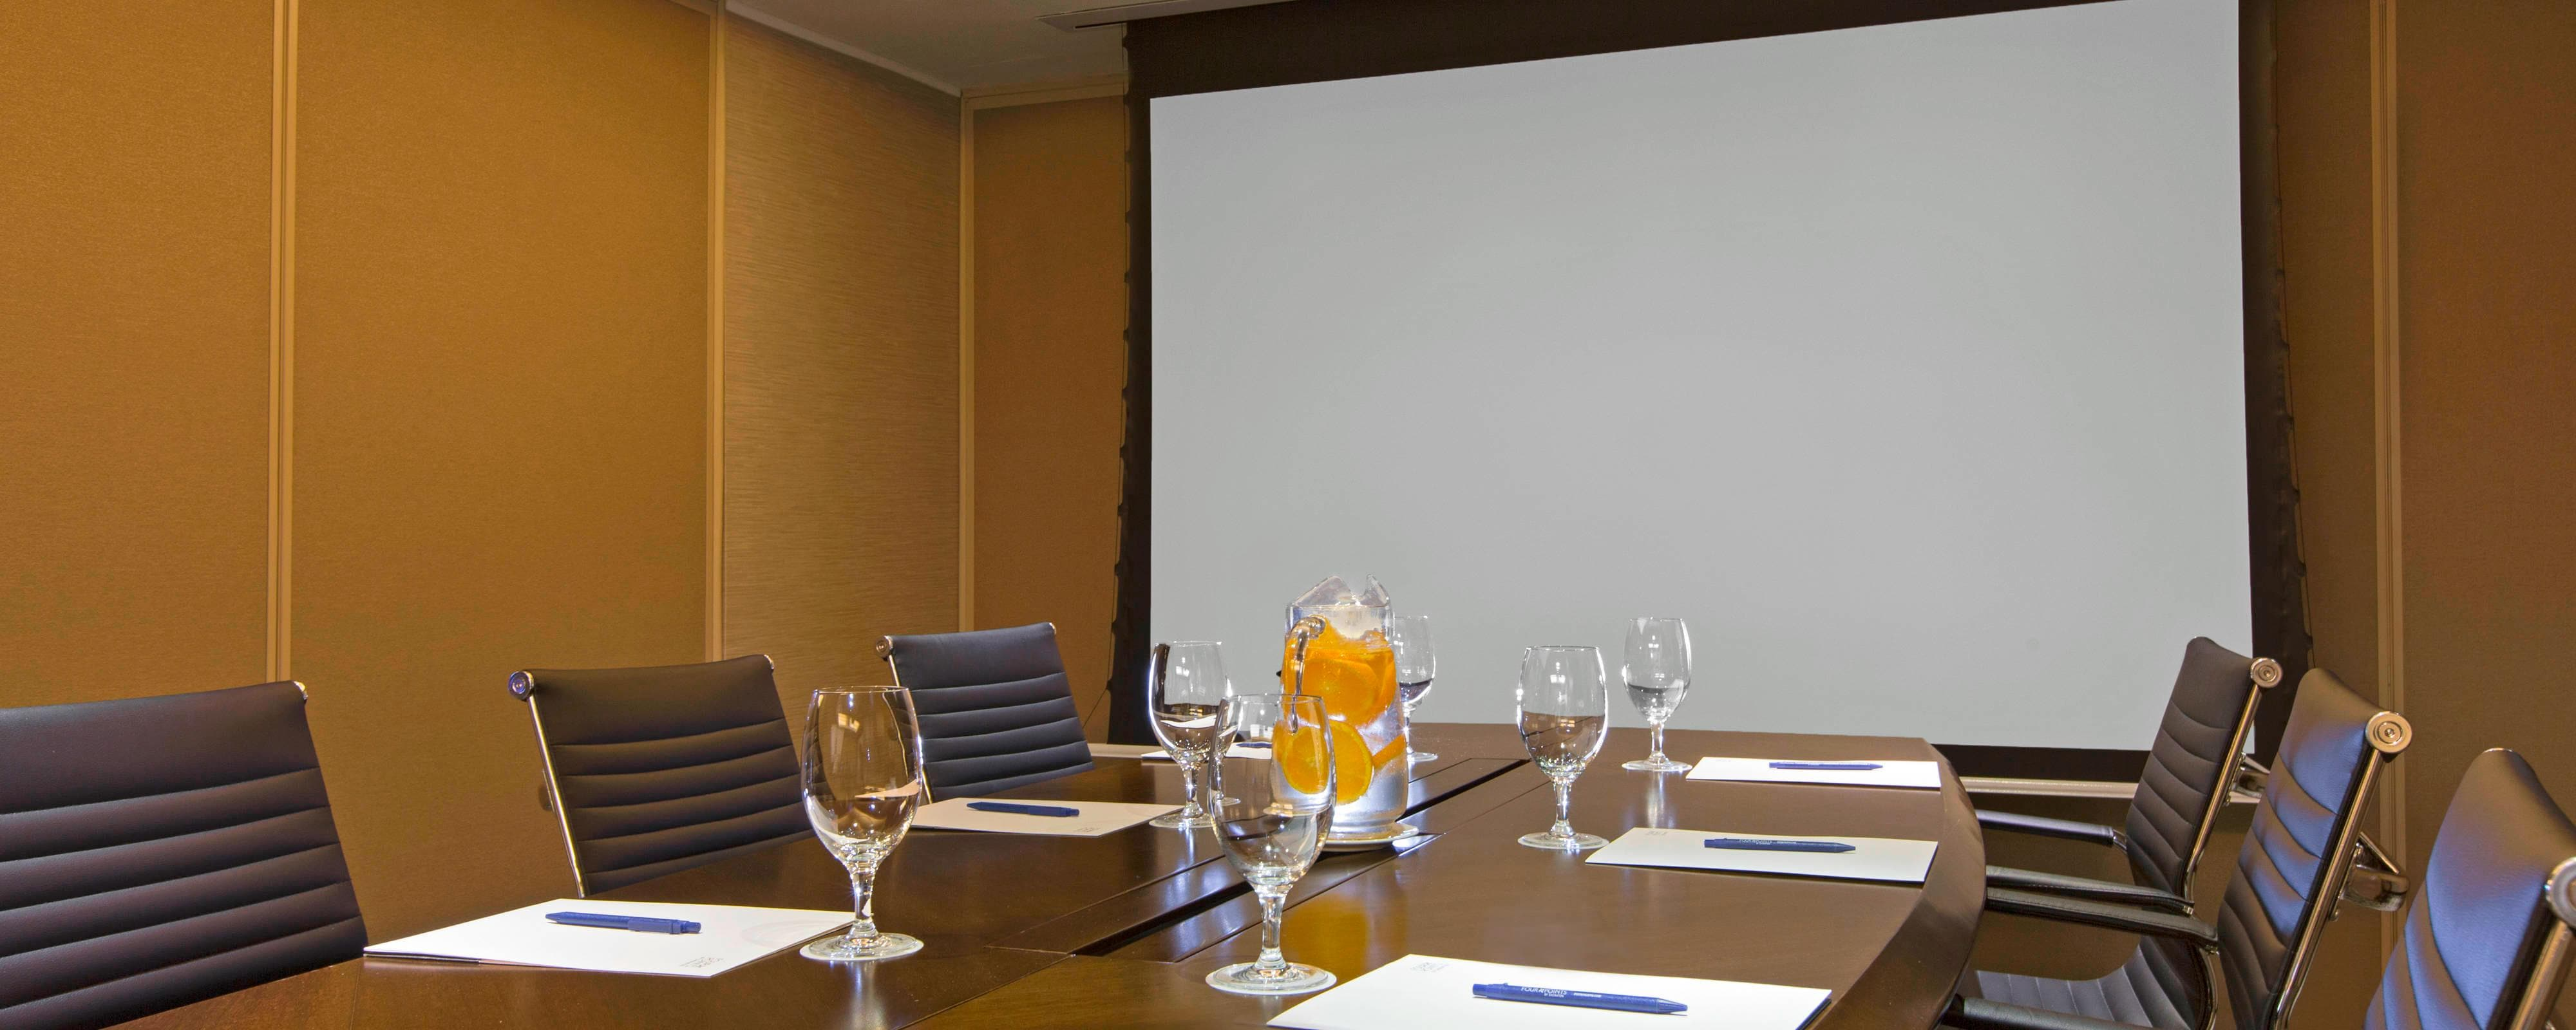 La Molina Meeting Room